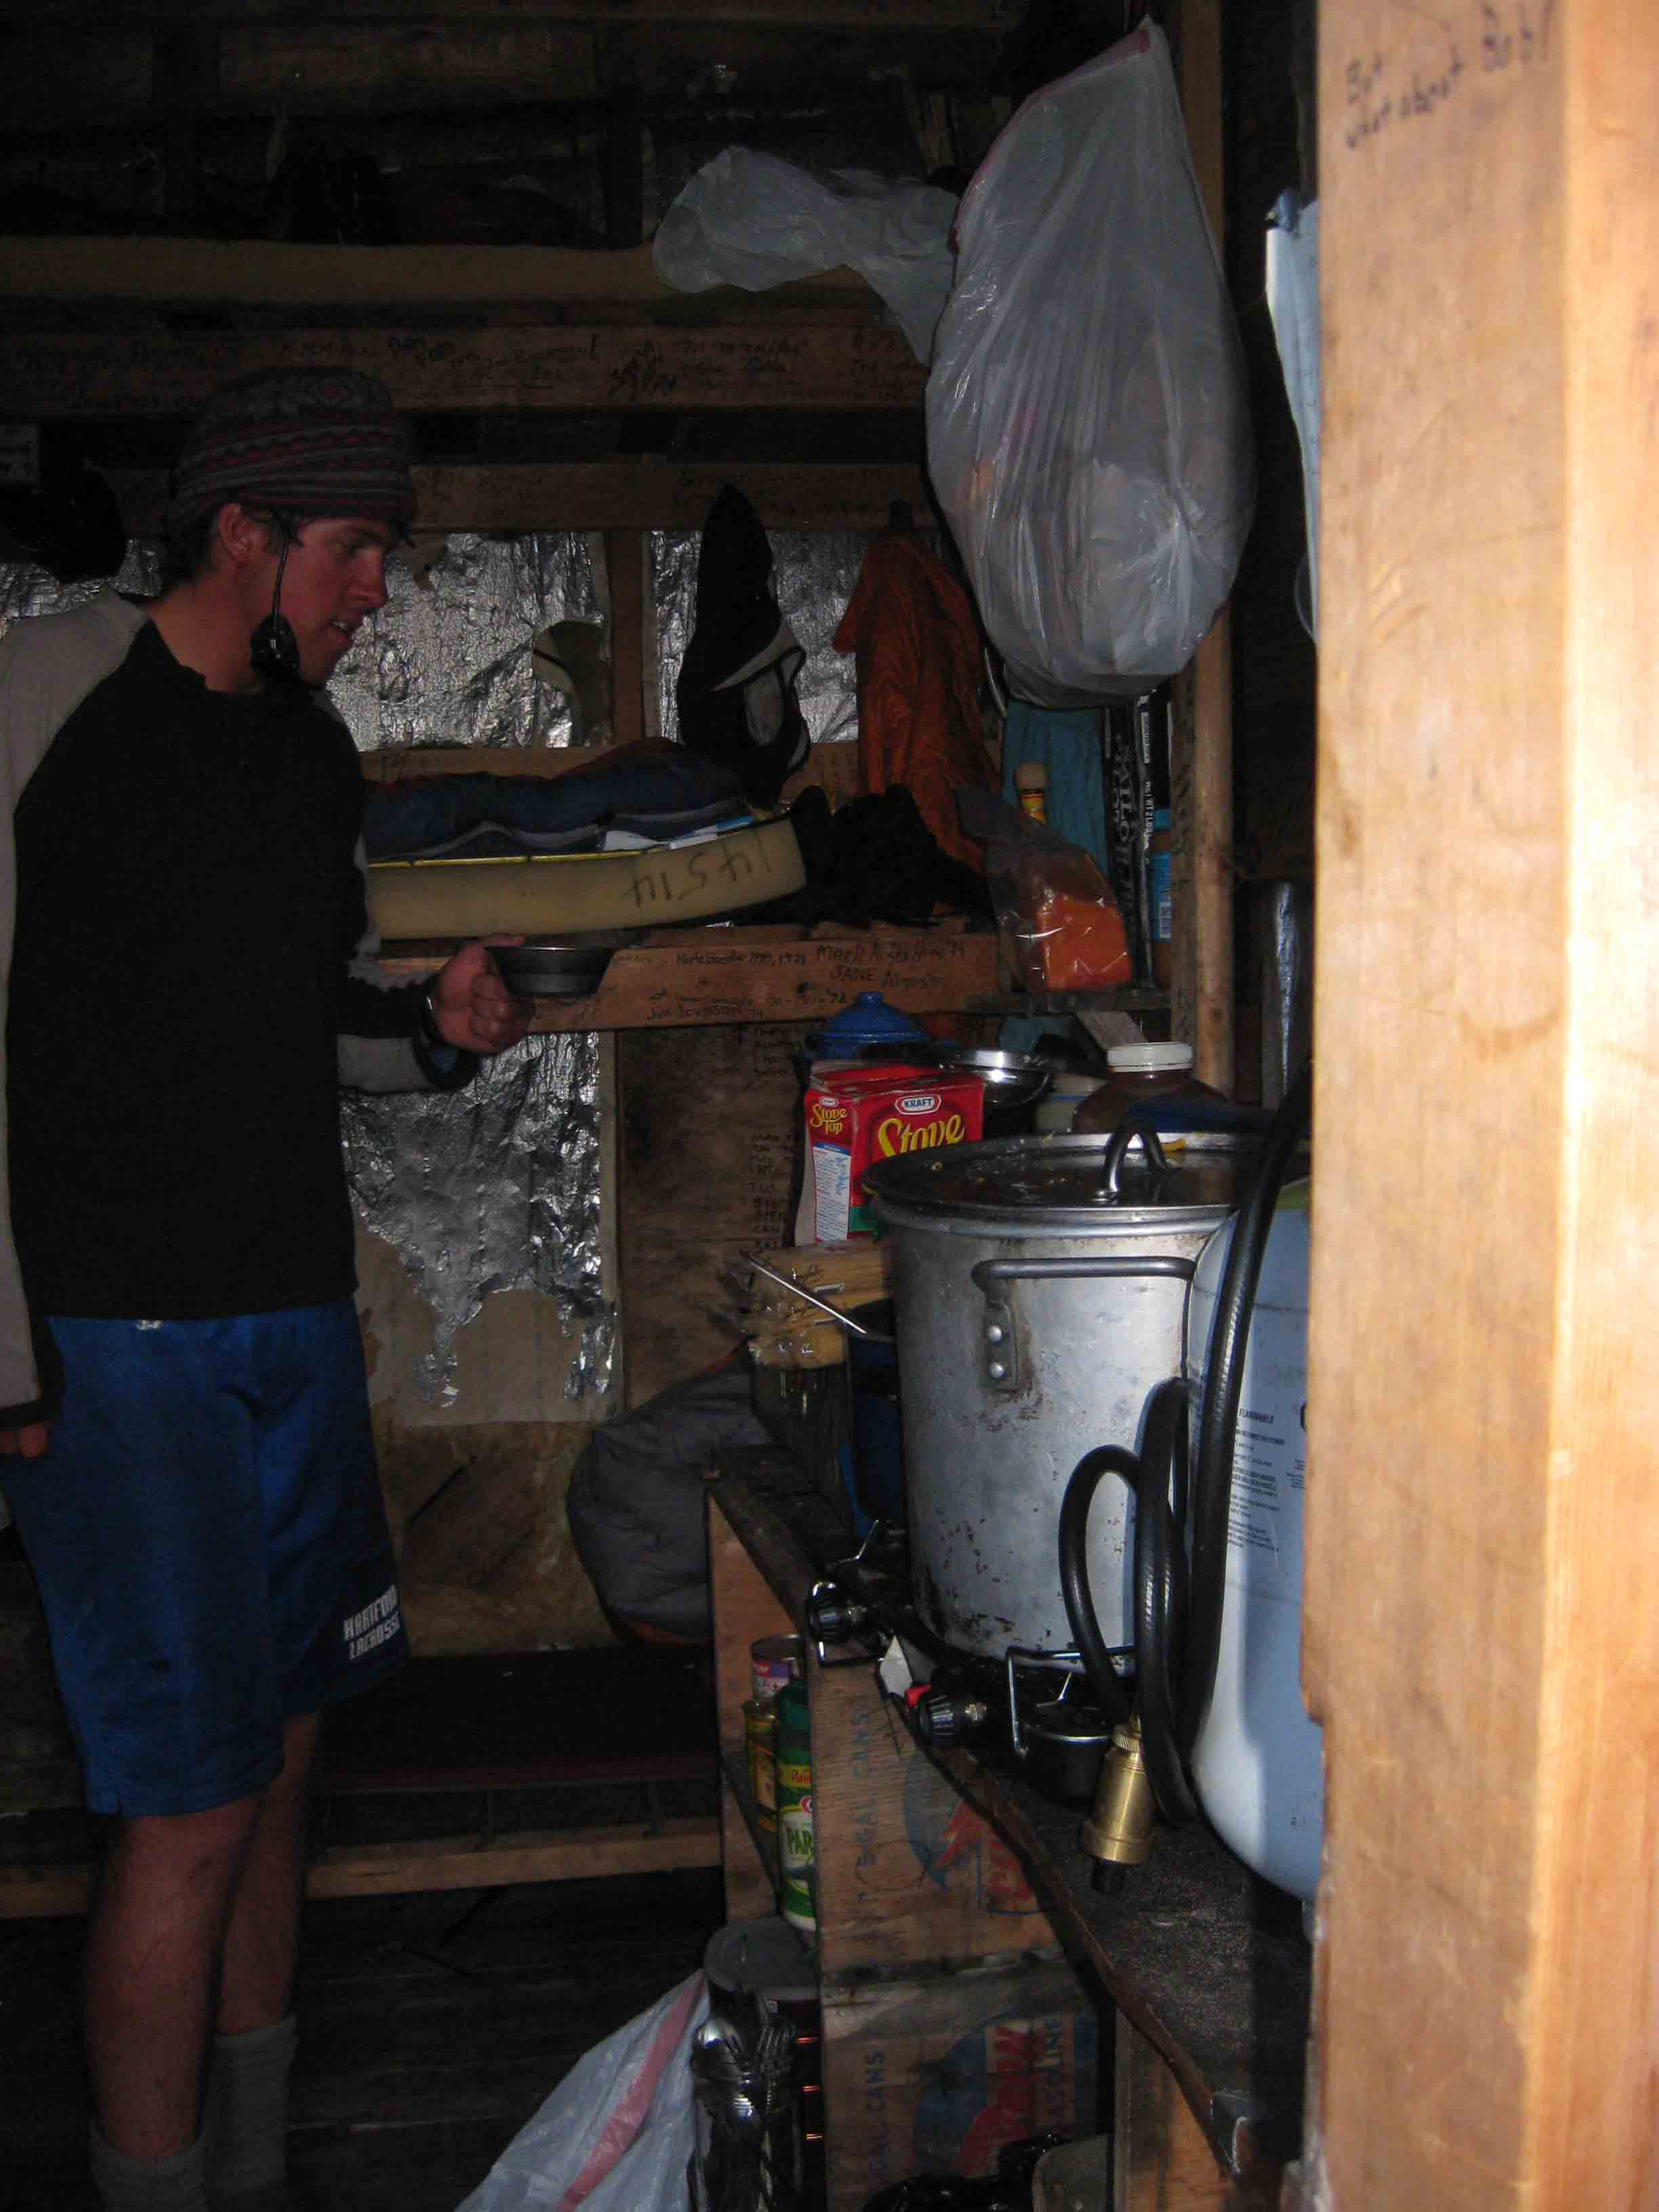 Interior of Camp 9 with Matt Pickart. Photo by Annie Cantrell.